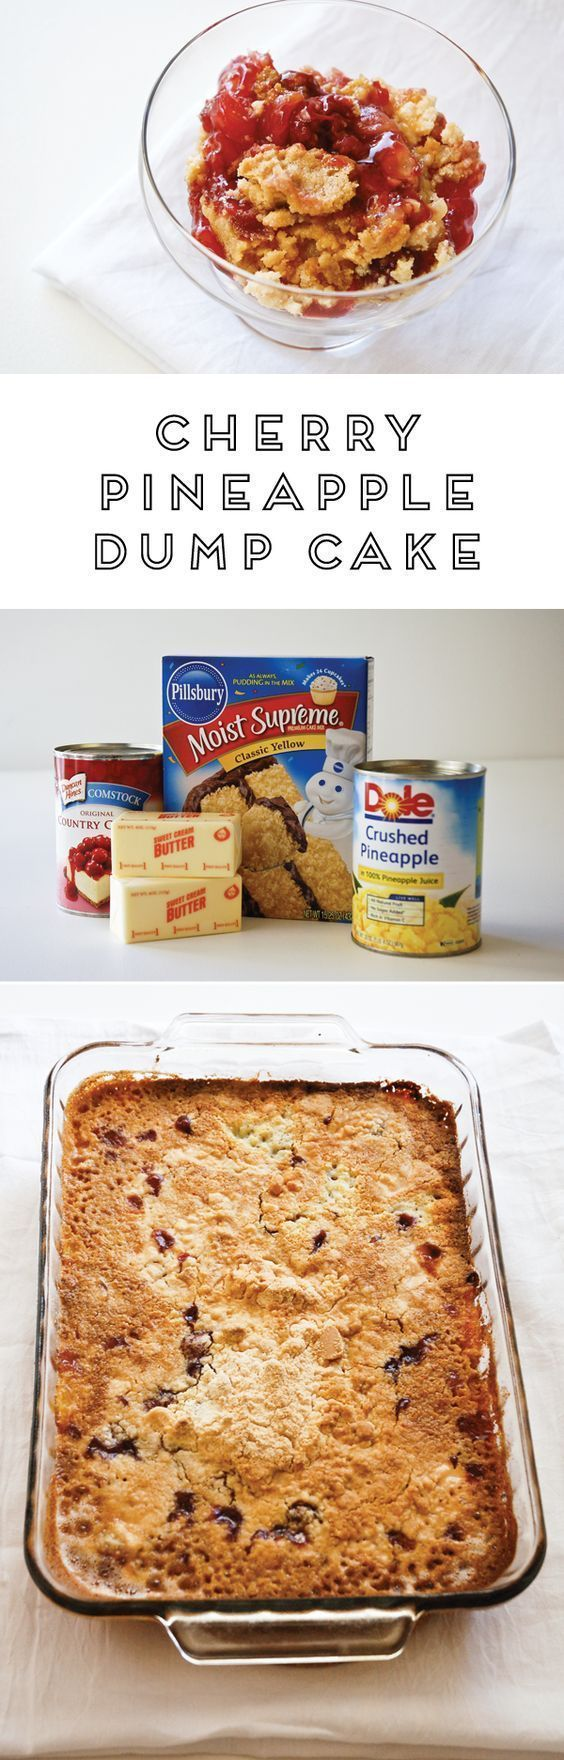 The best Cherry Pineapple dump cake recipe ever! So easy to make and it's super delicious. Always a crowd pleaser!